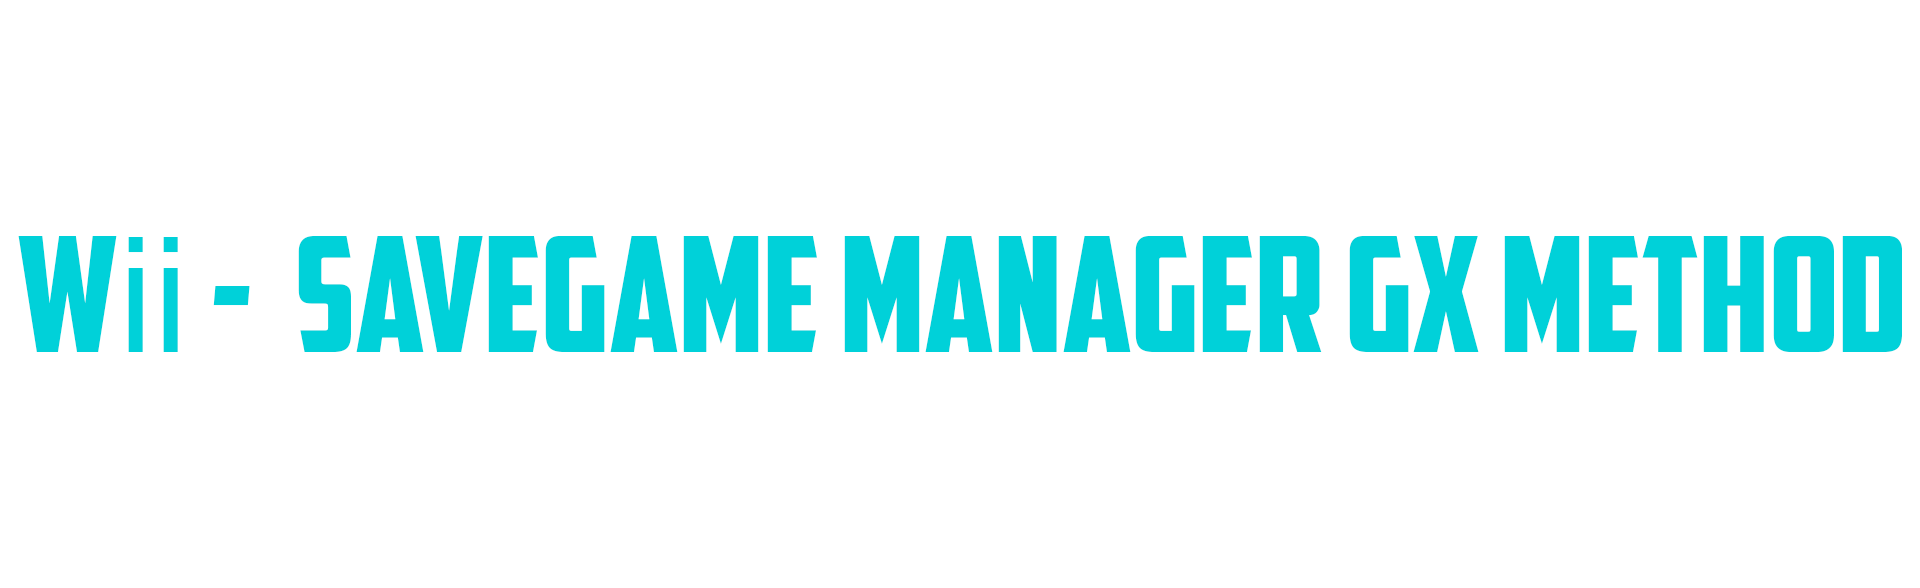 Using SaveGame Manager GX - Managing Wii Saves - Project